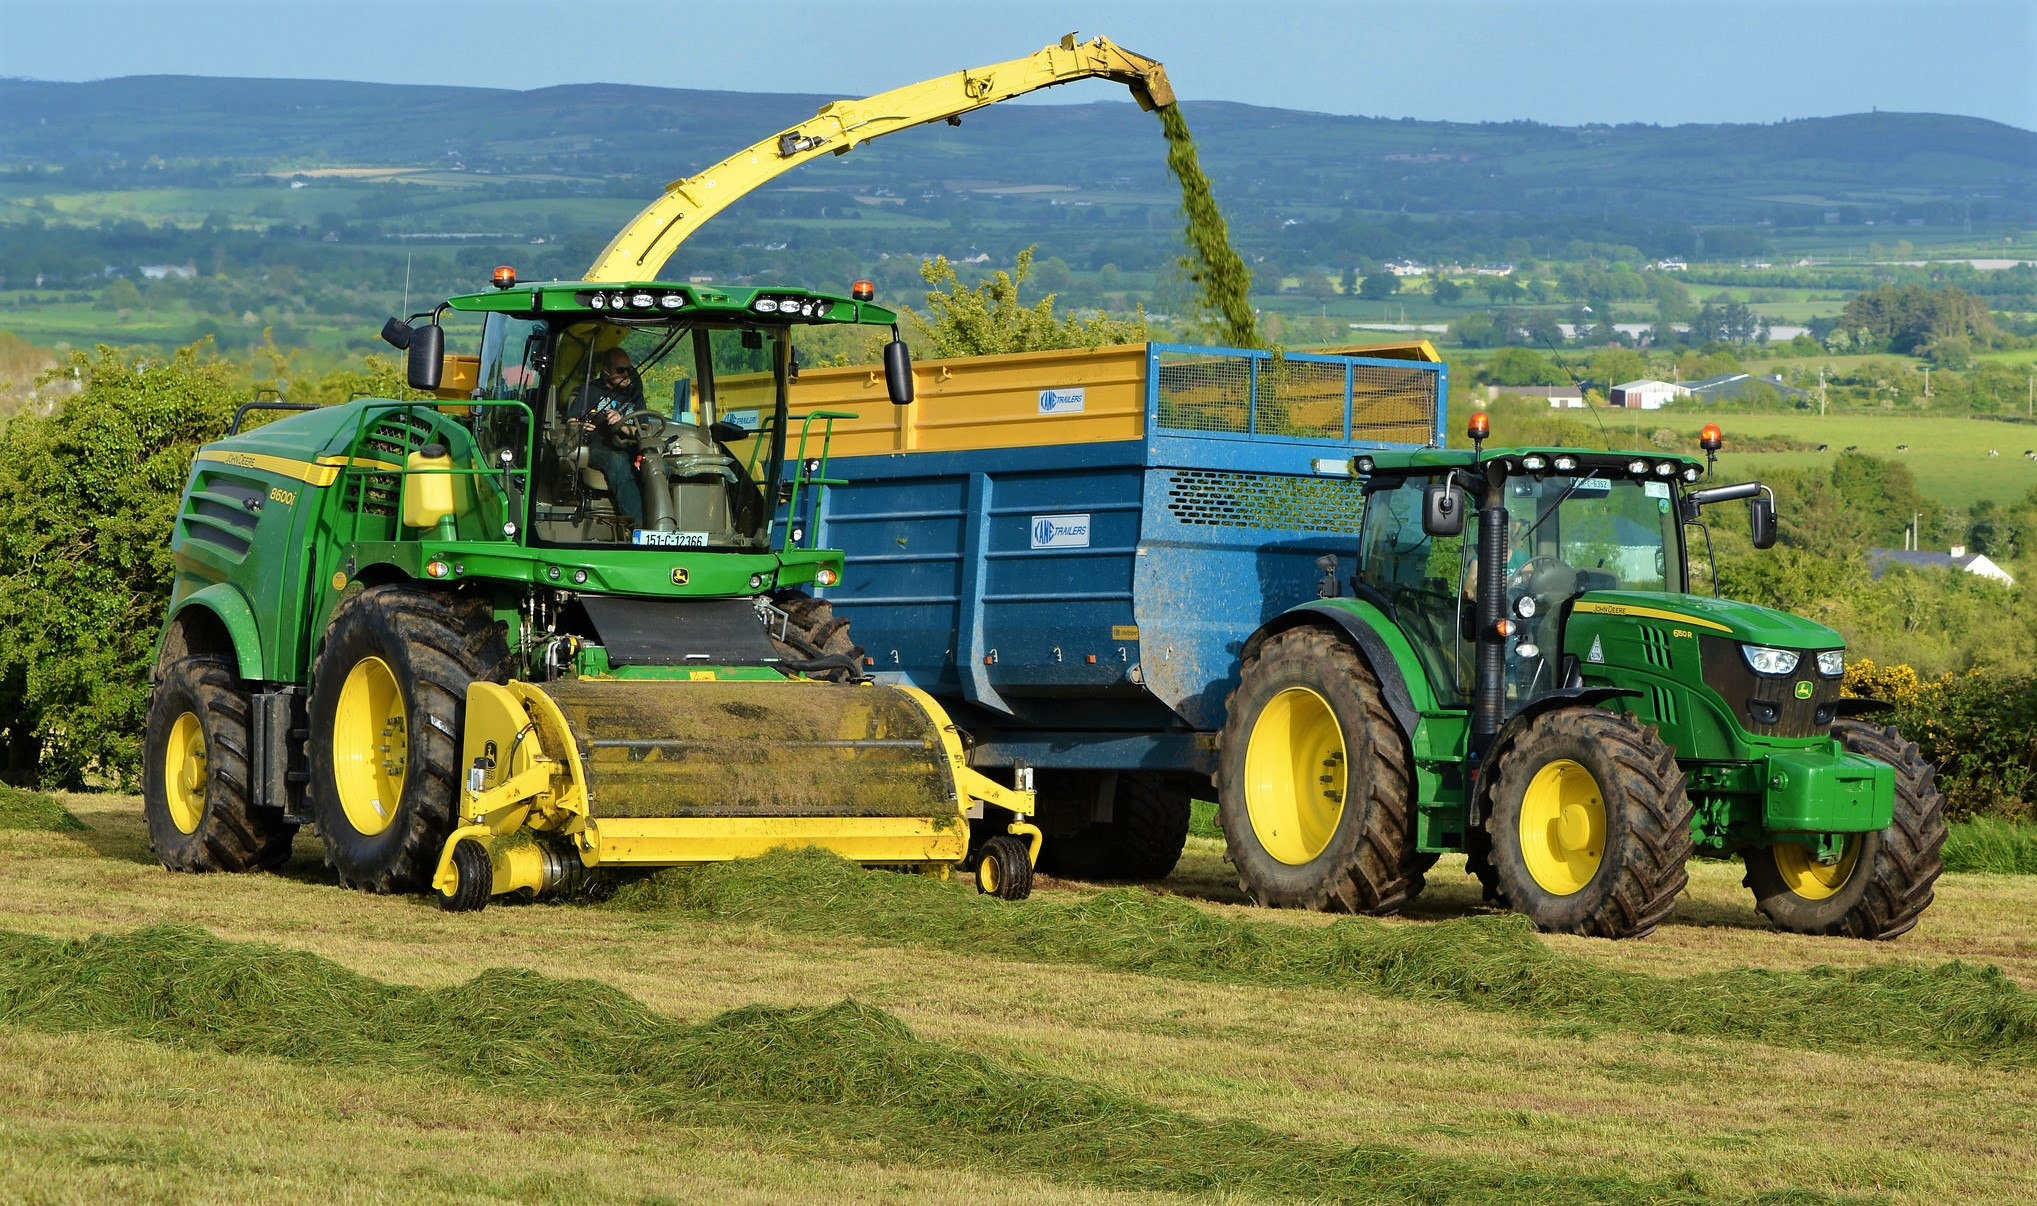 Have You Got The Makings Of A Silage Chopping Pro